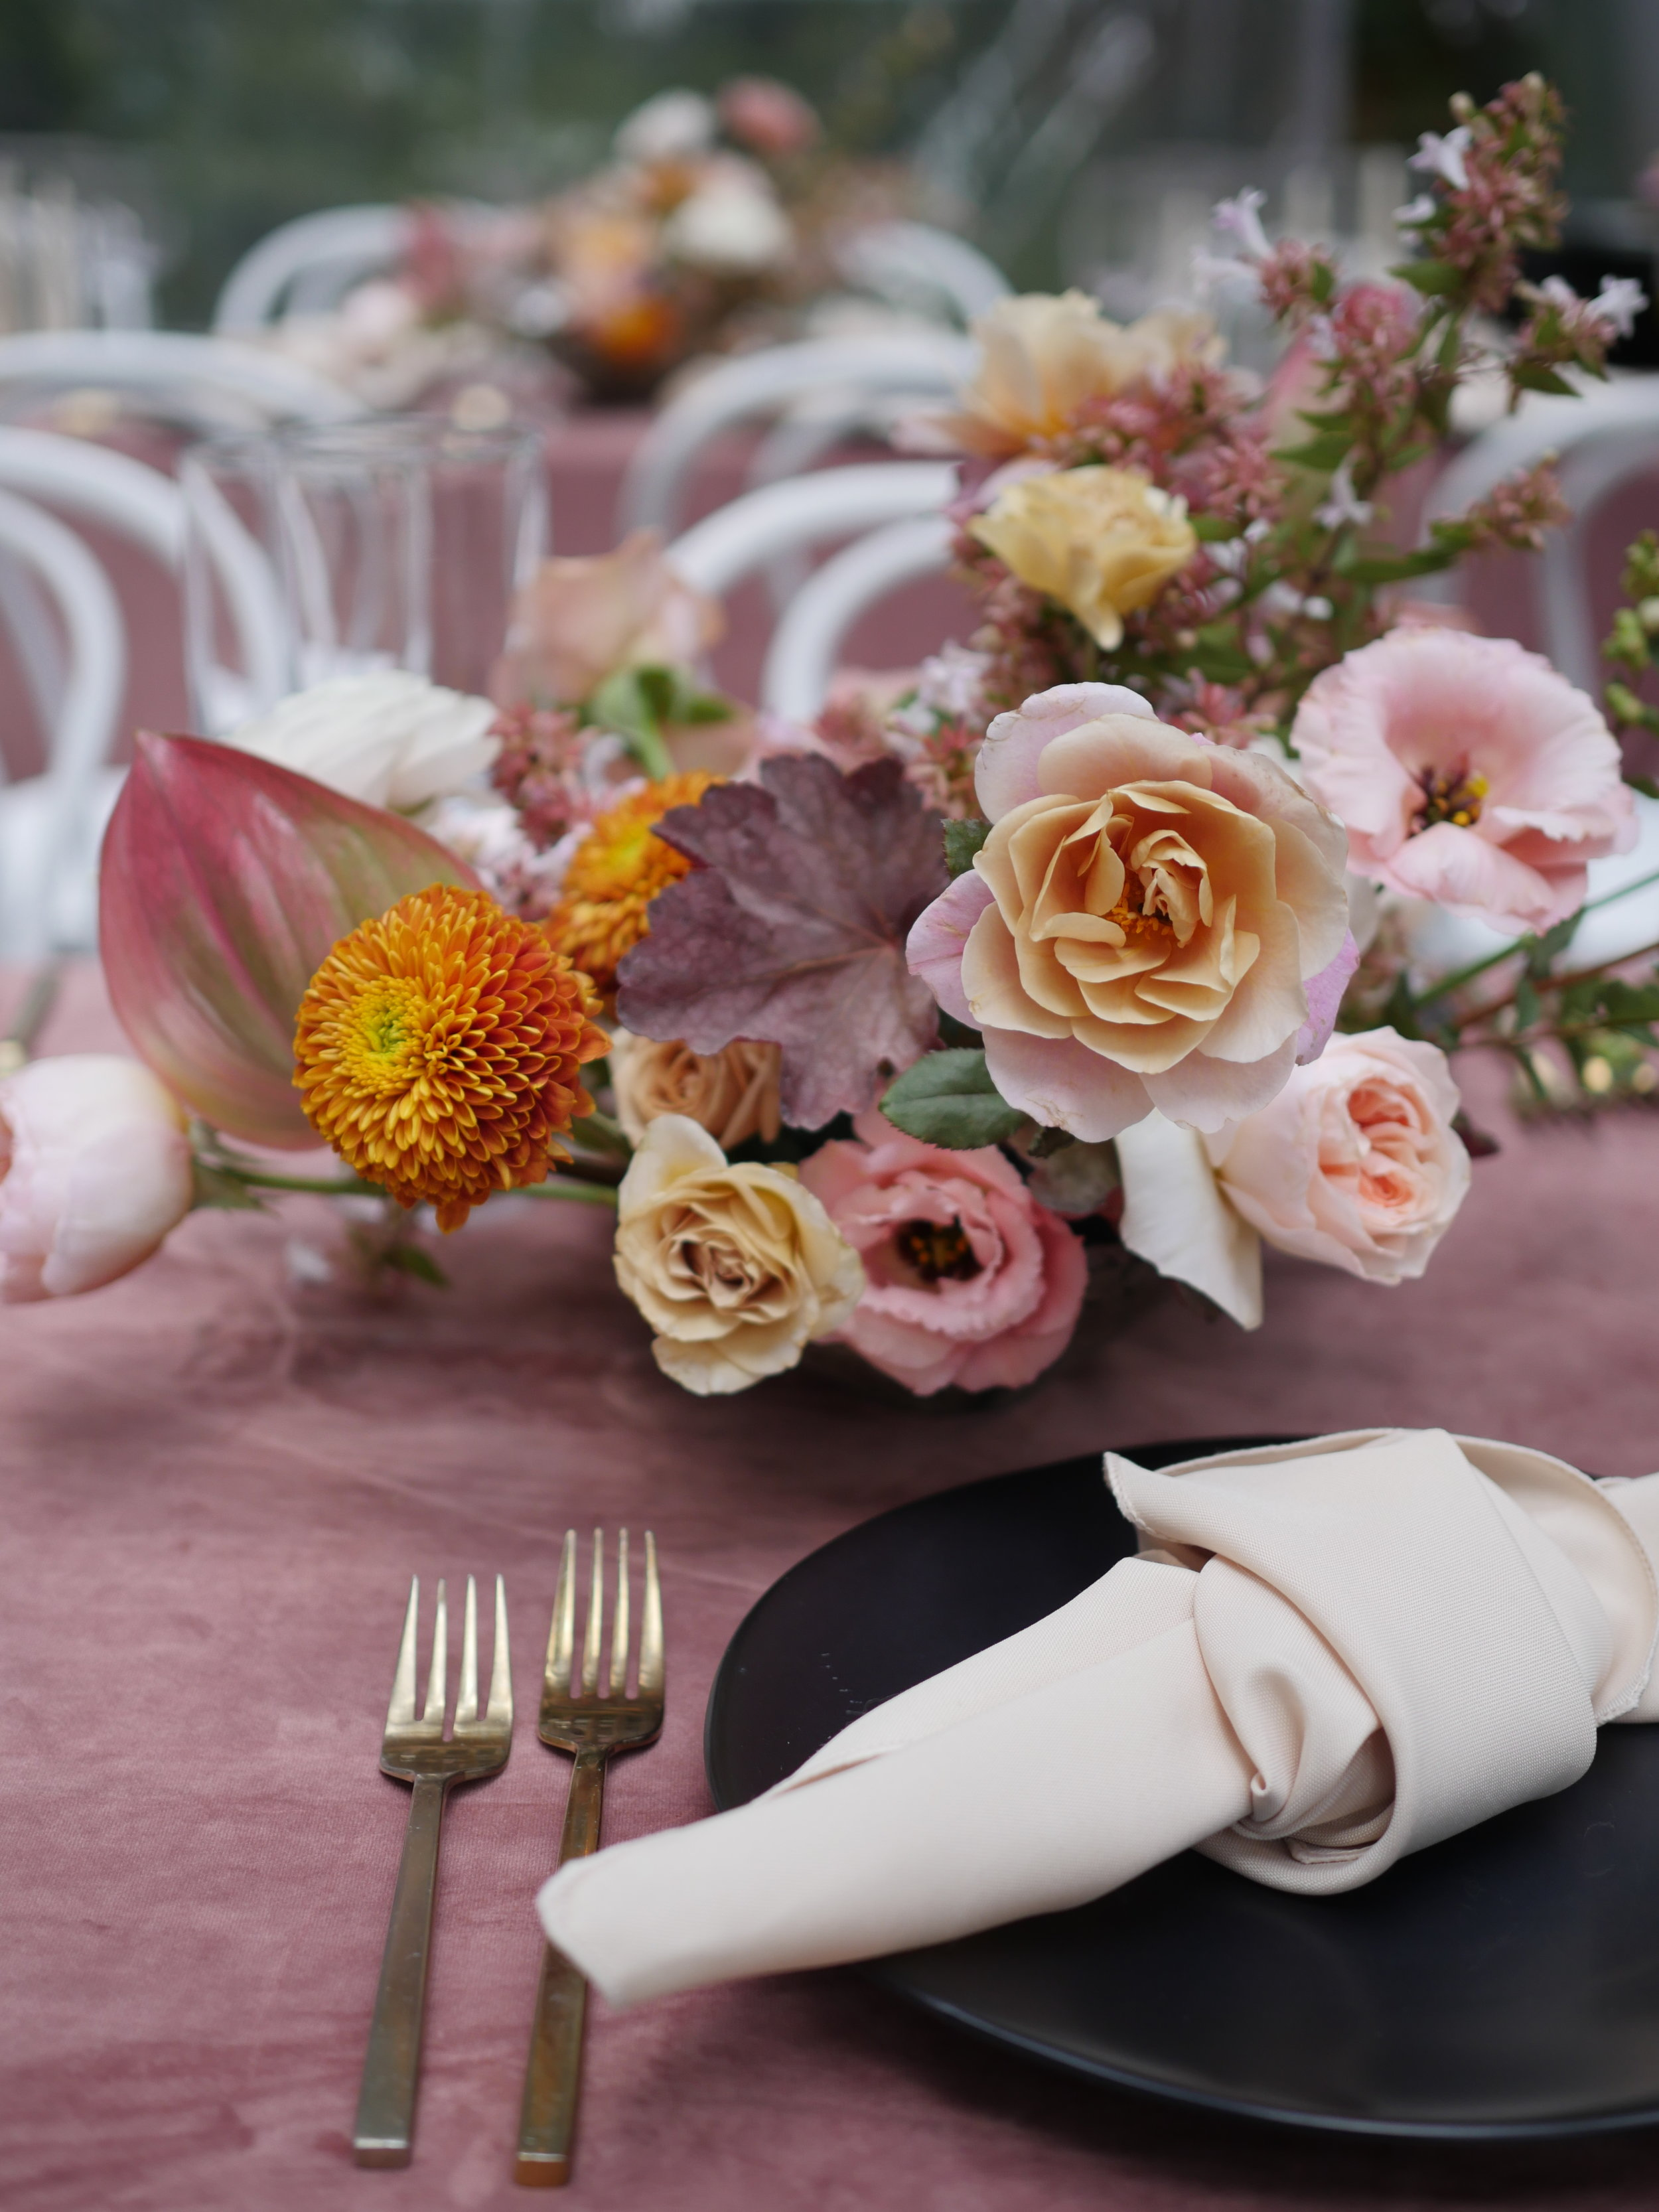 Wedding flower centerpiece by Color Theory Collective